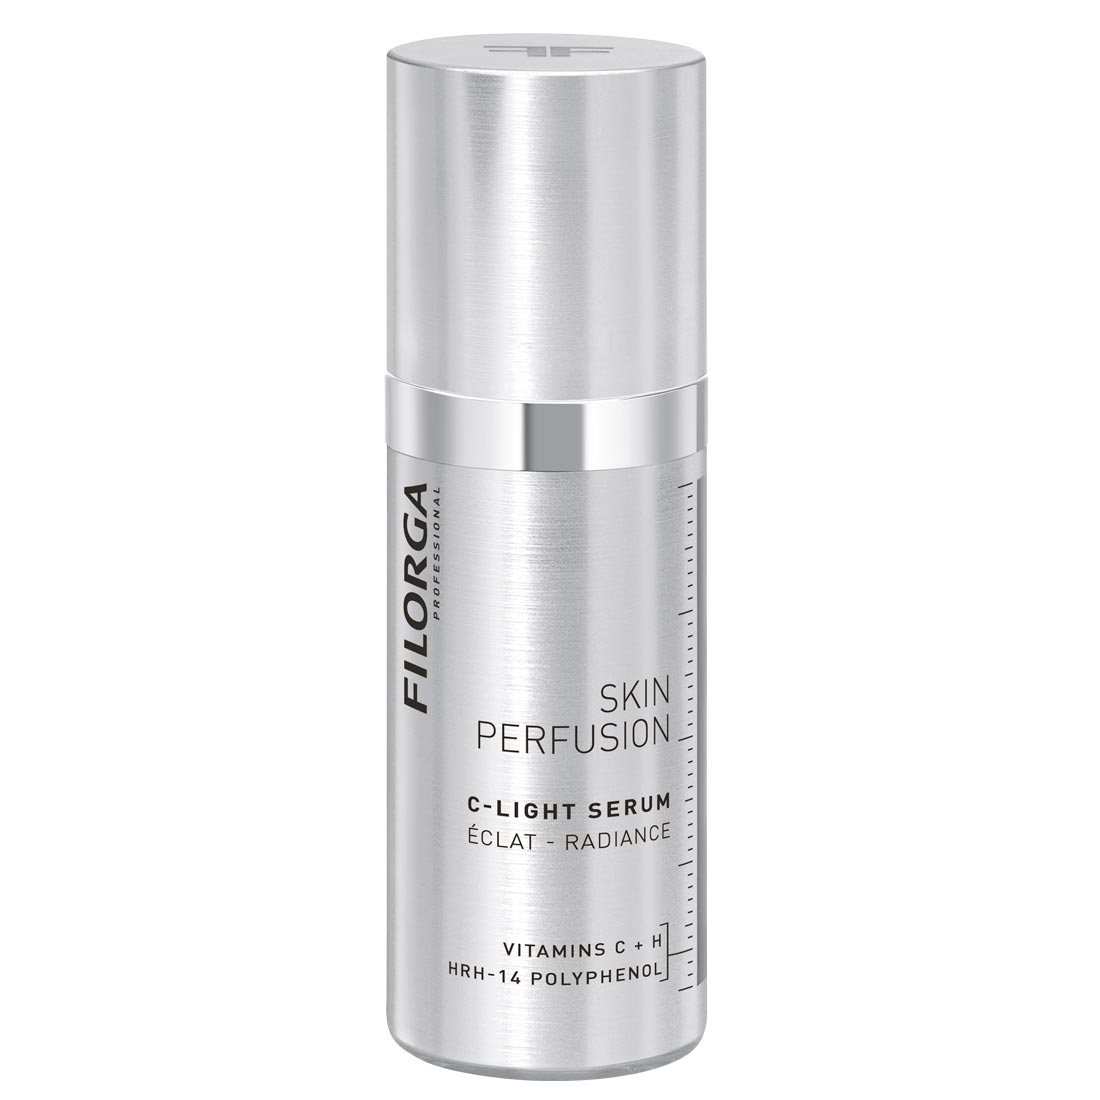 SKIN PERFUSION C-LIGHT SERUM 1